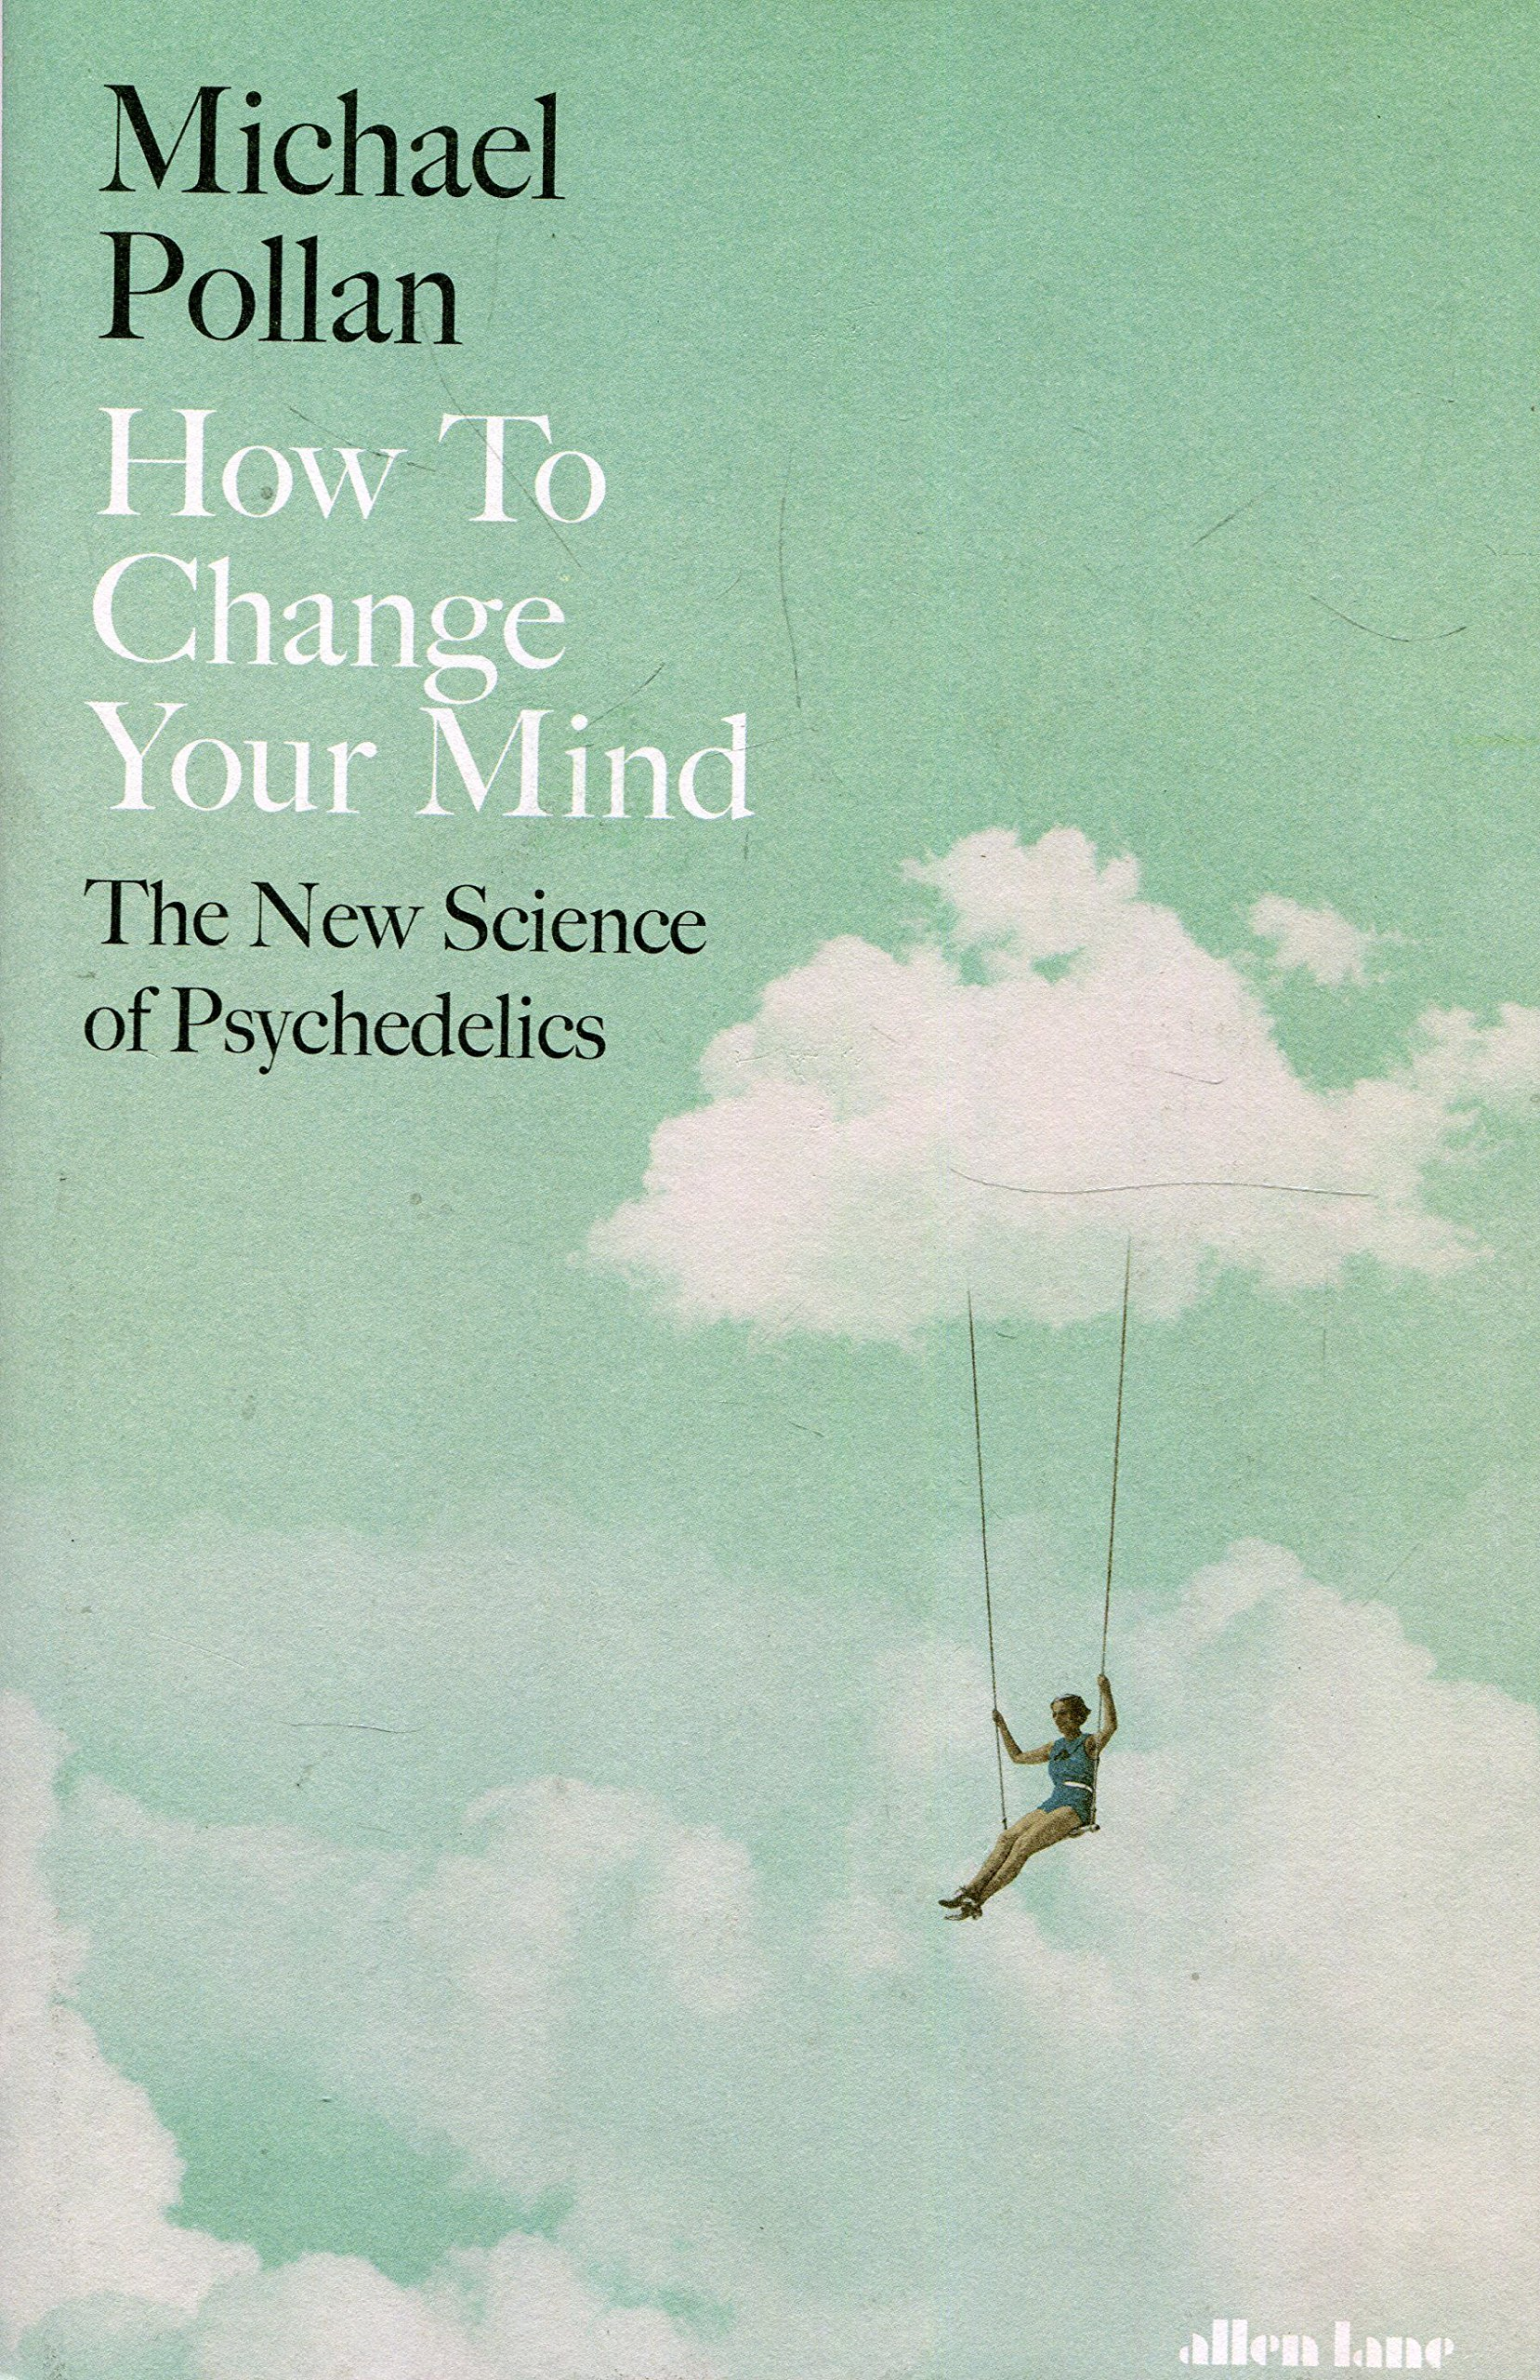 How to Change Your Mind: The New Science of Psychedelics (Inglese) Copertina rigida – 17 mag 2018 Michael Pollan Allen Lane 0241294223 BODY